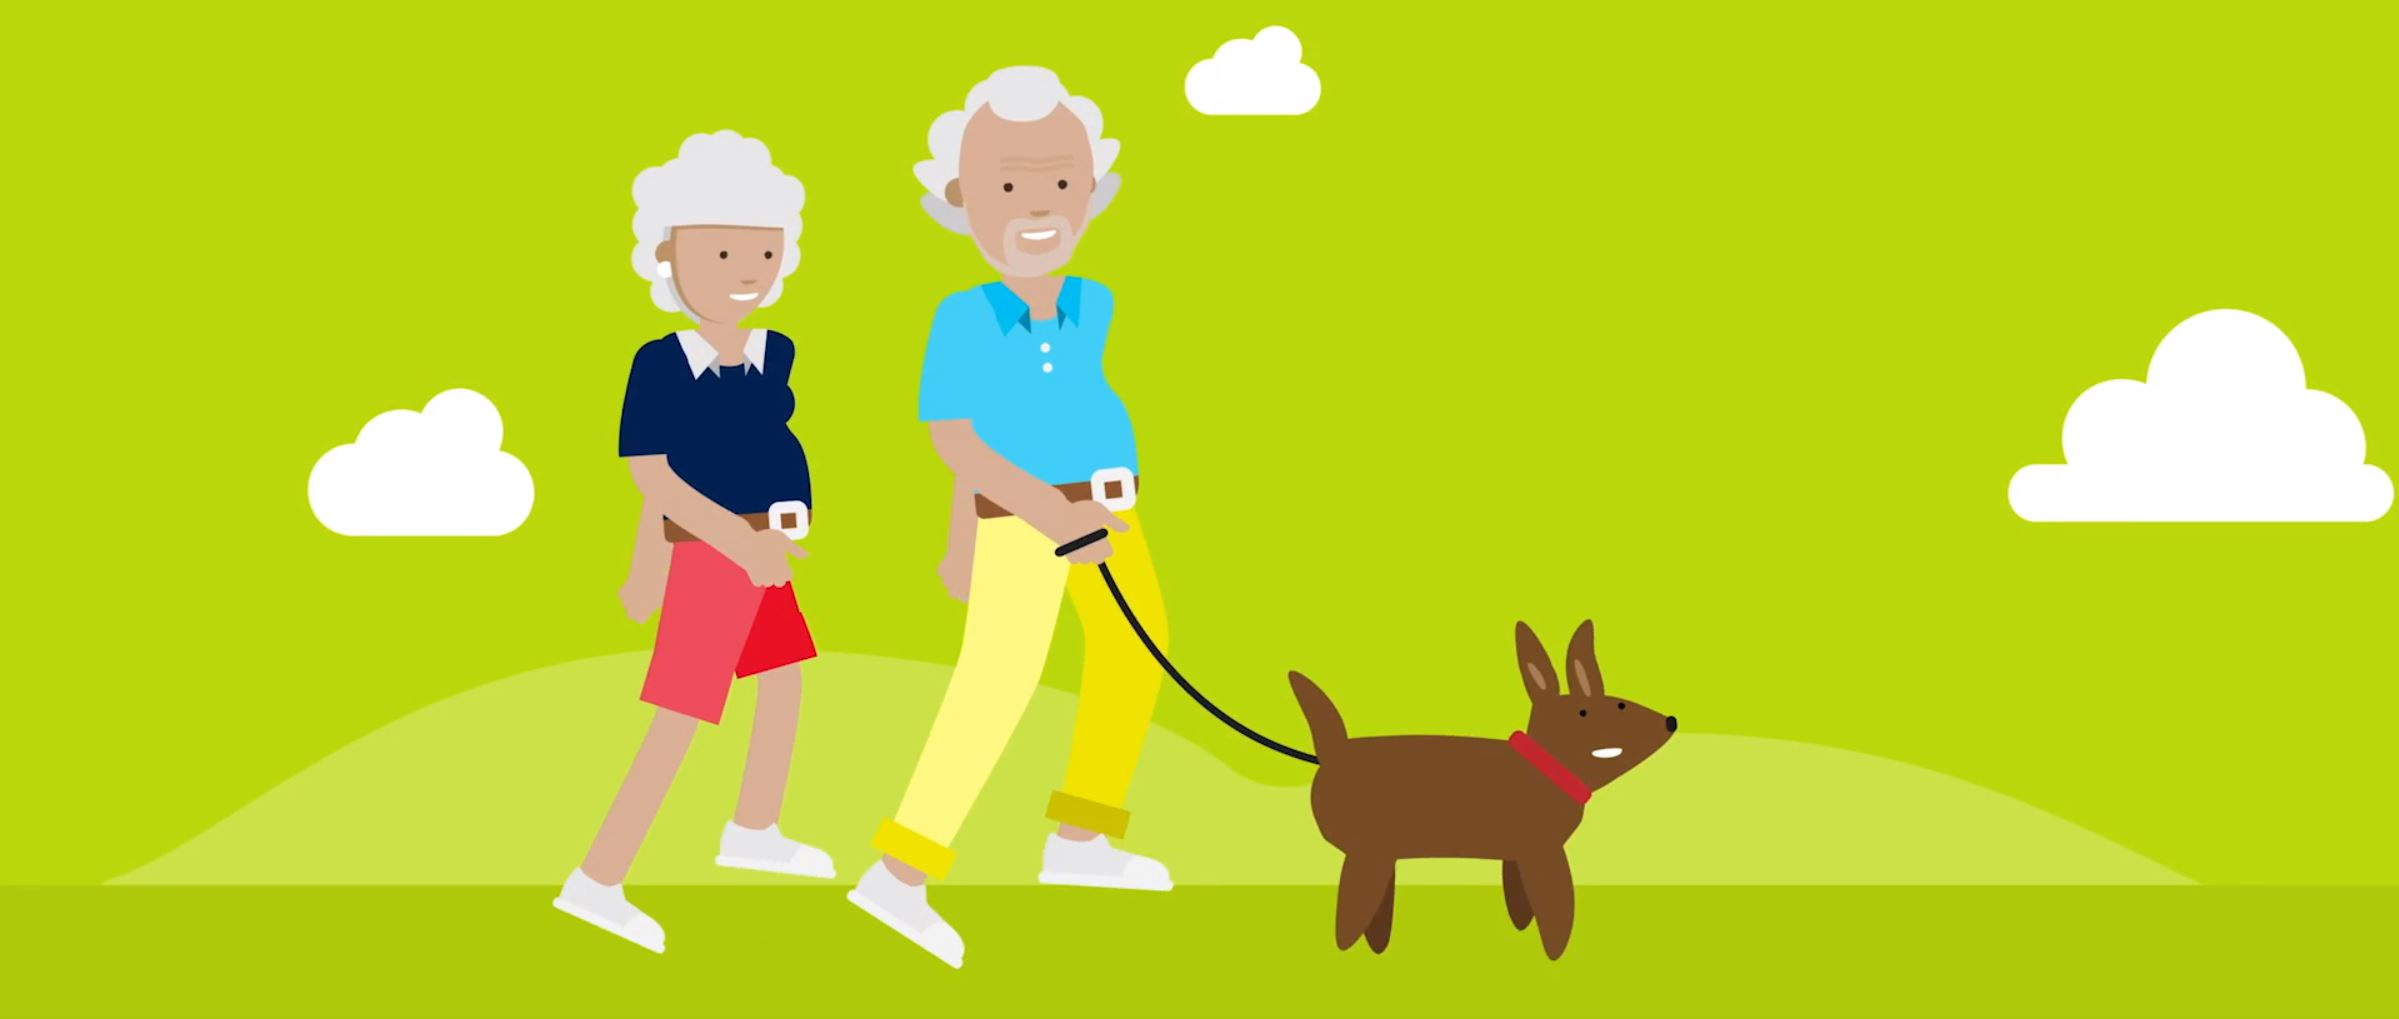 2D character animation image 9 for Microsoft Innovation - health project